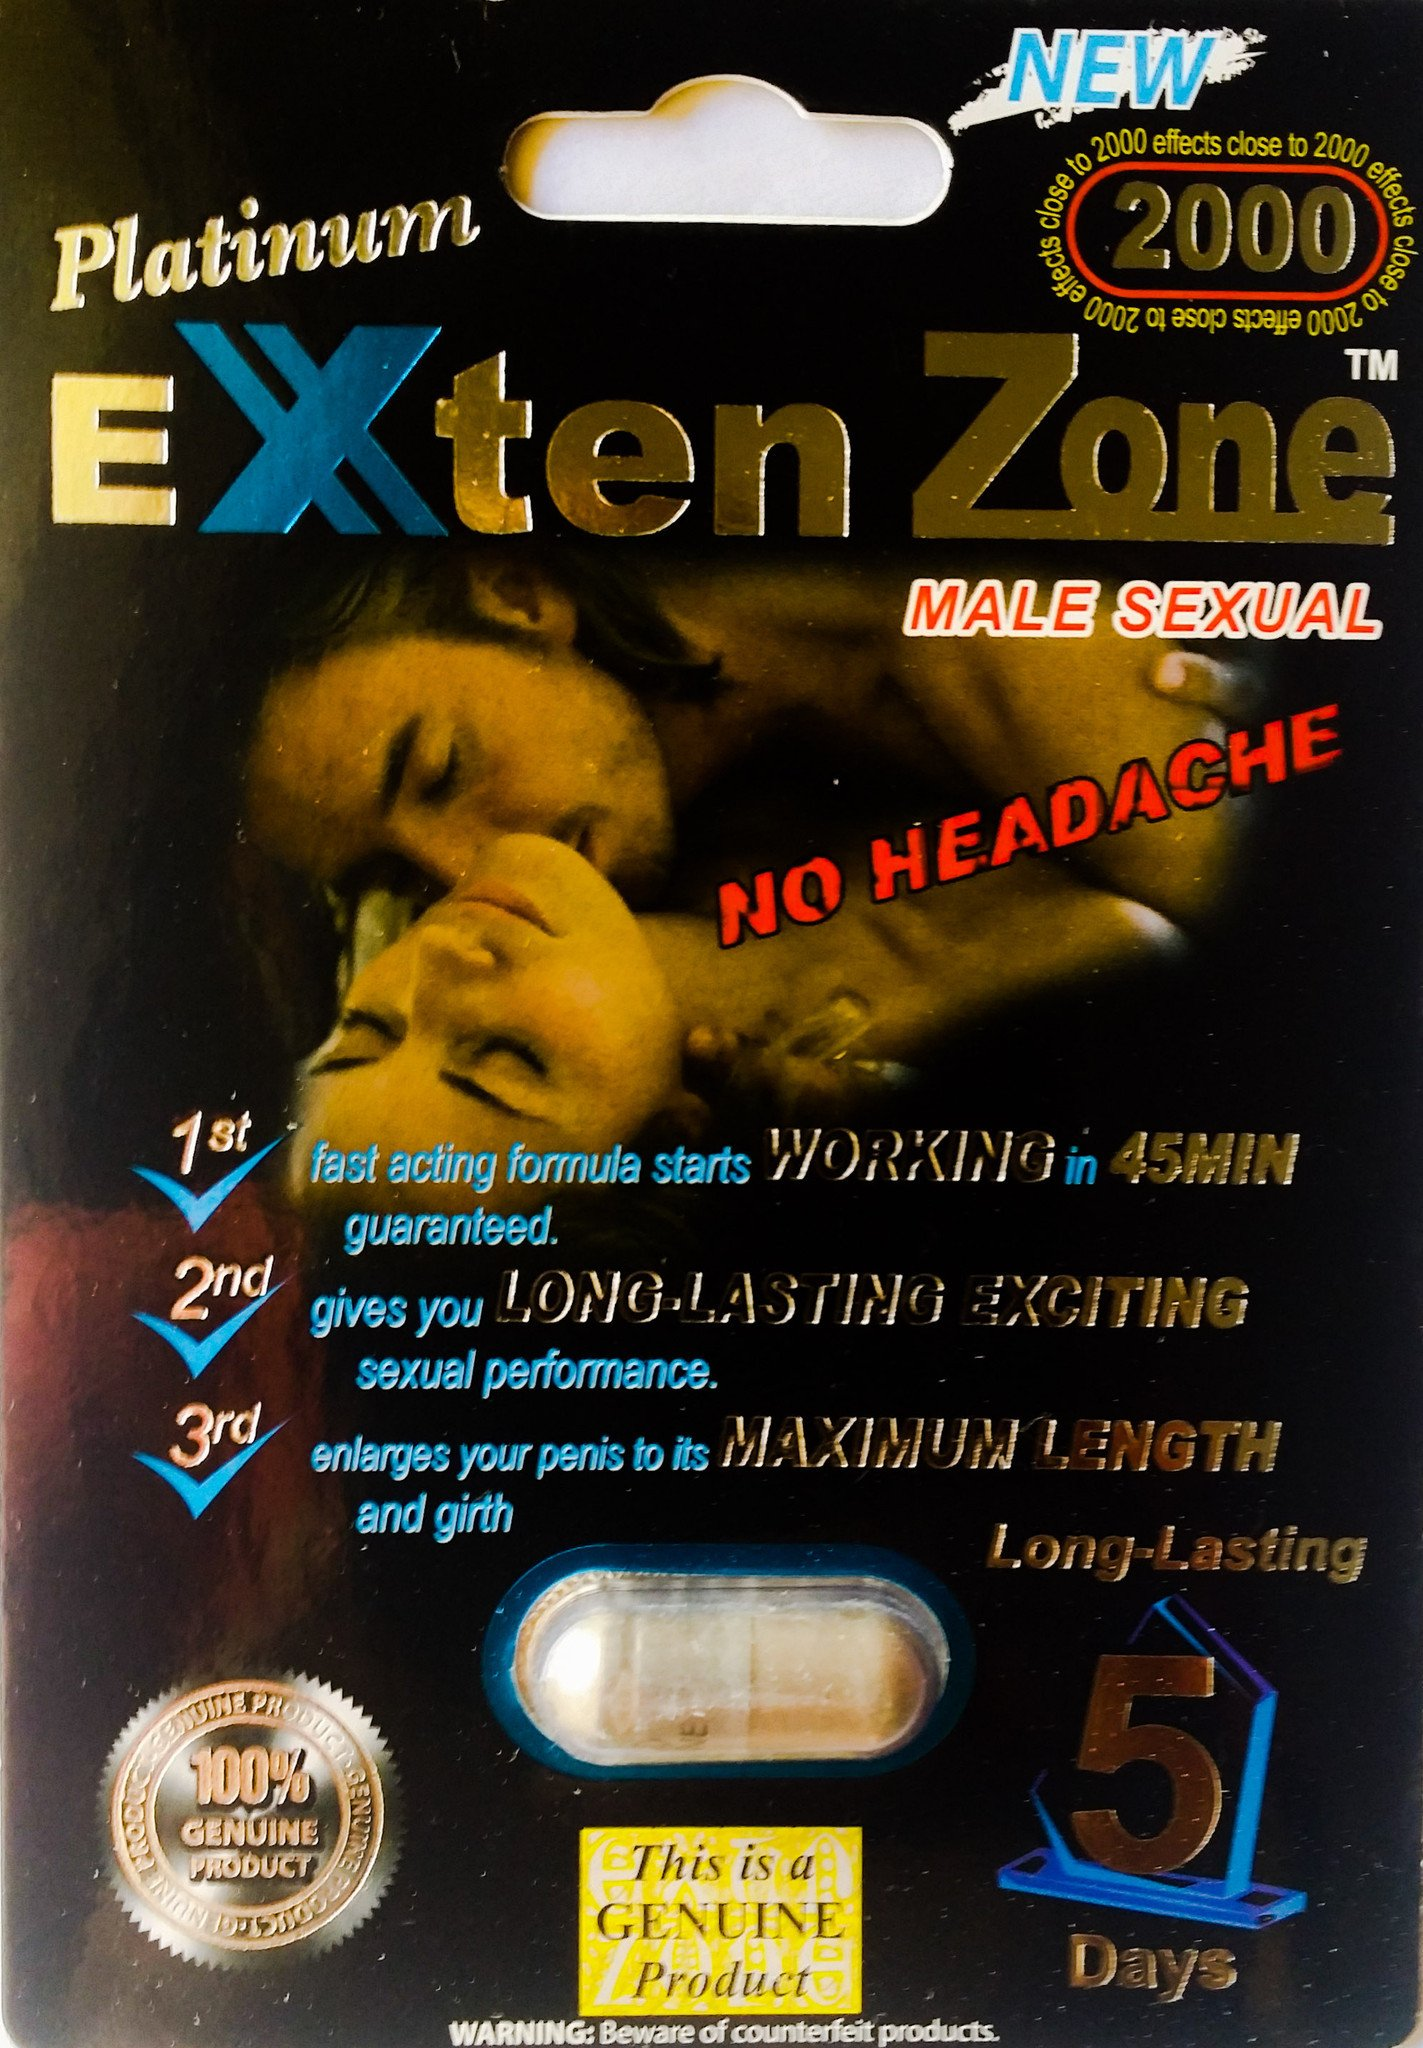 Exten Zone Male Sexual Enhancement Pills Platinum 2000 1 Pack